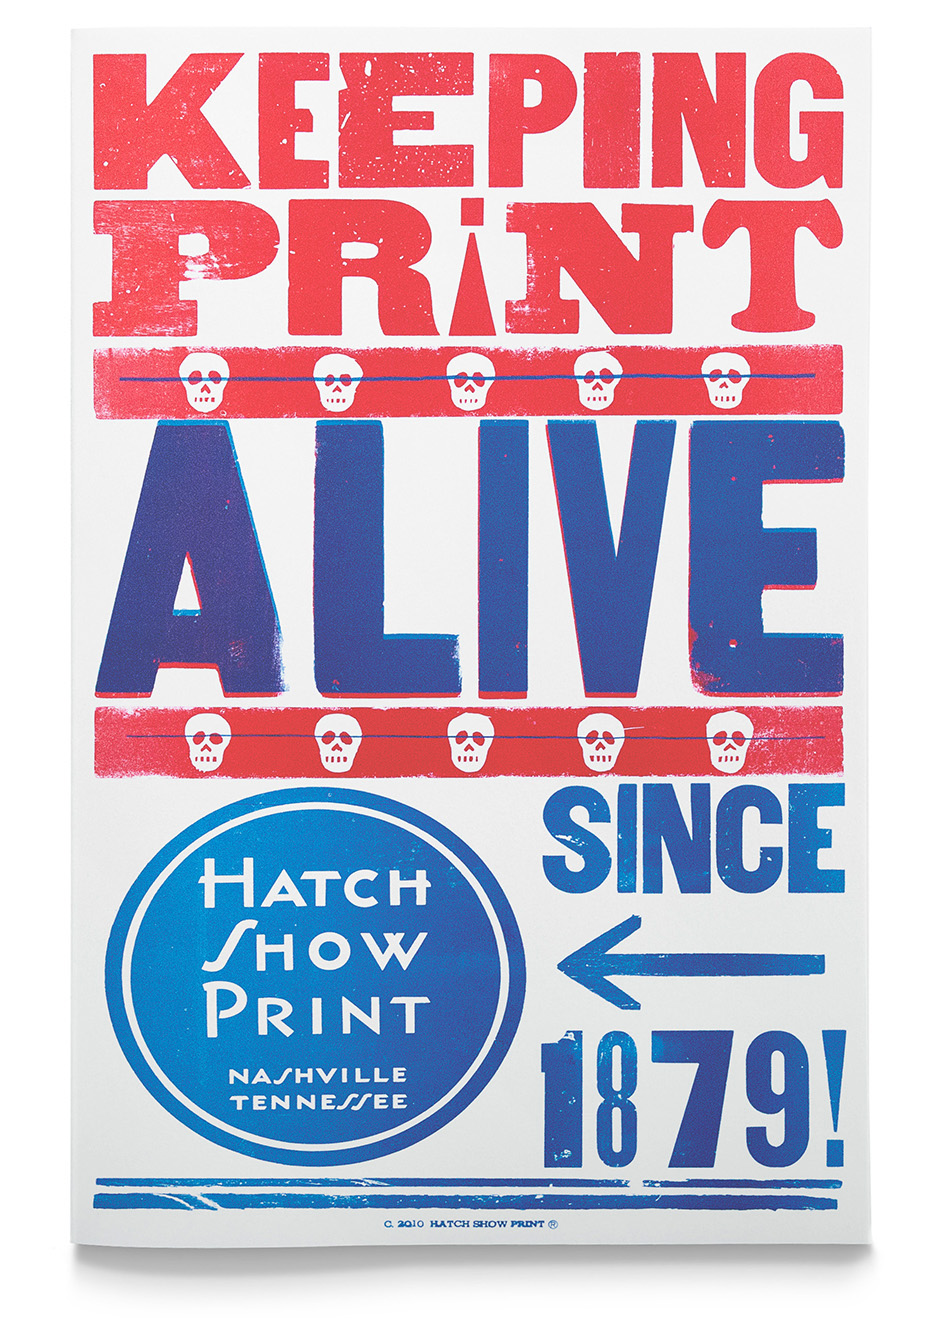 Hatch_Show_Print_Keeping_Print_alive.jpg